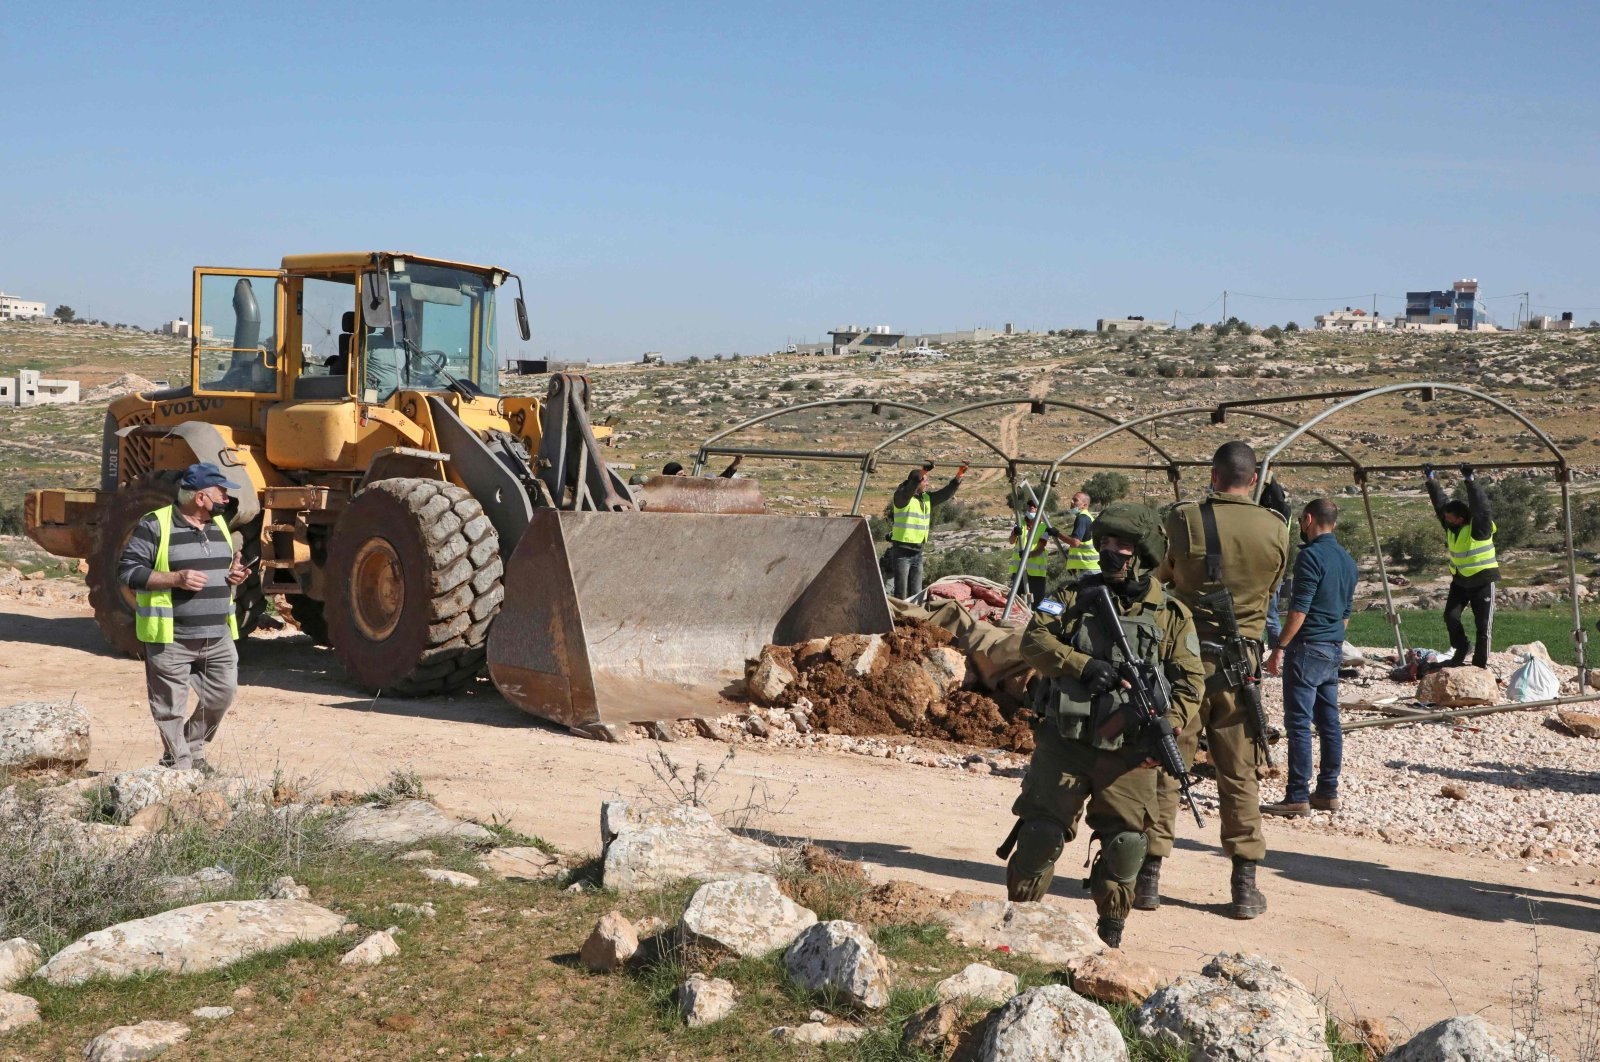 Israeli forces demolish a Palestinian residential tent located within Area C, where Israel retains control, including over planning and construction, in the village of Susya, south of the occupied West Bank city of Hebron, Palestine, Feb. 10, 2021. (AFP Photo)